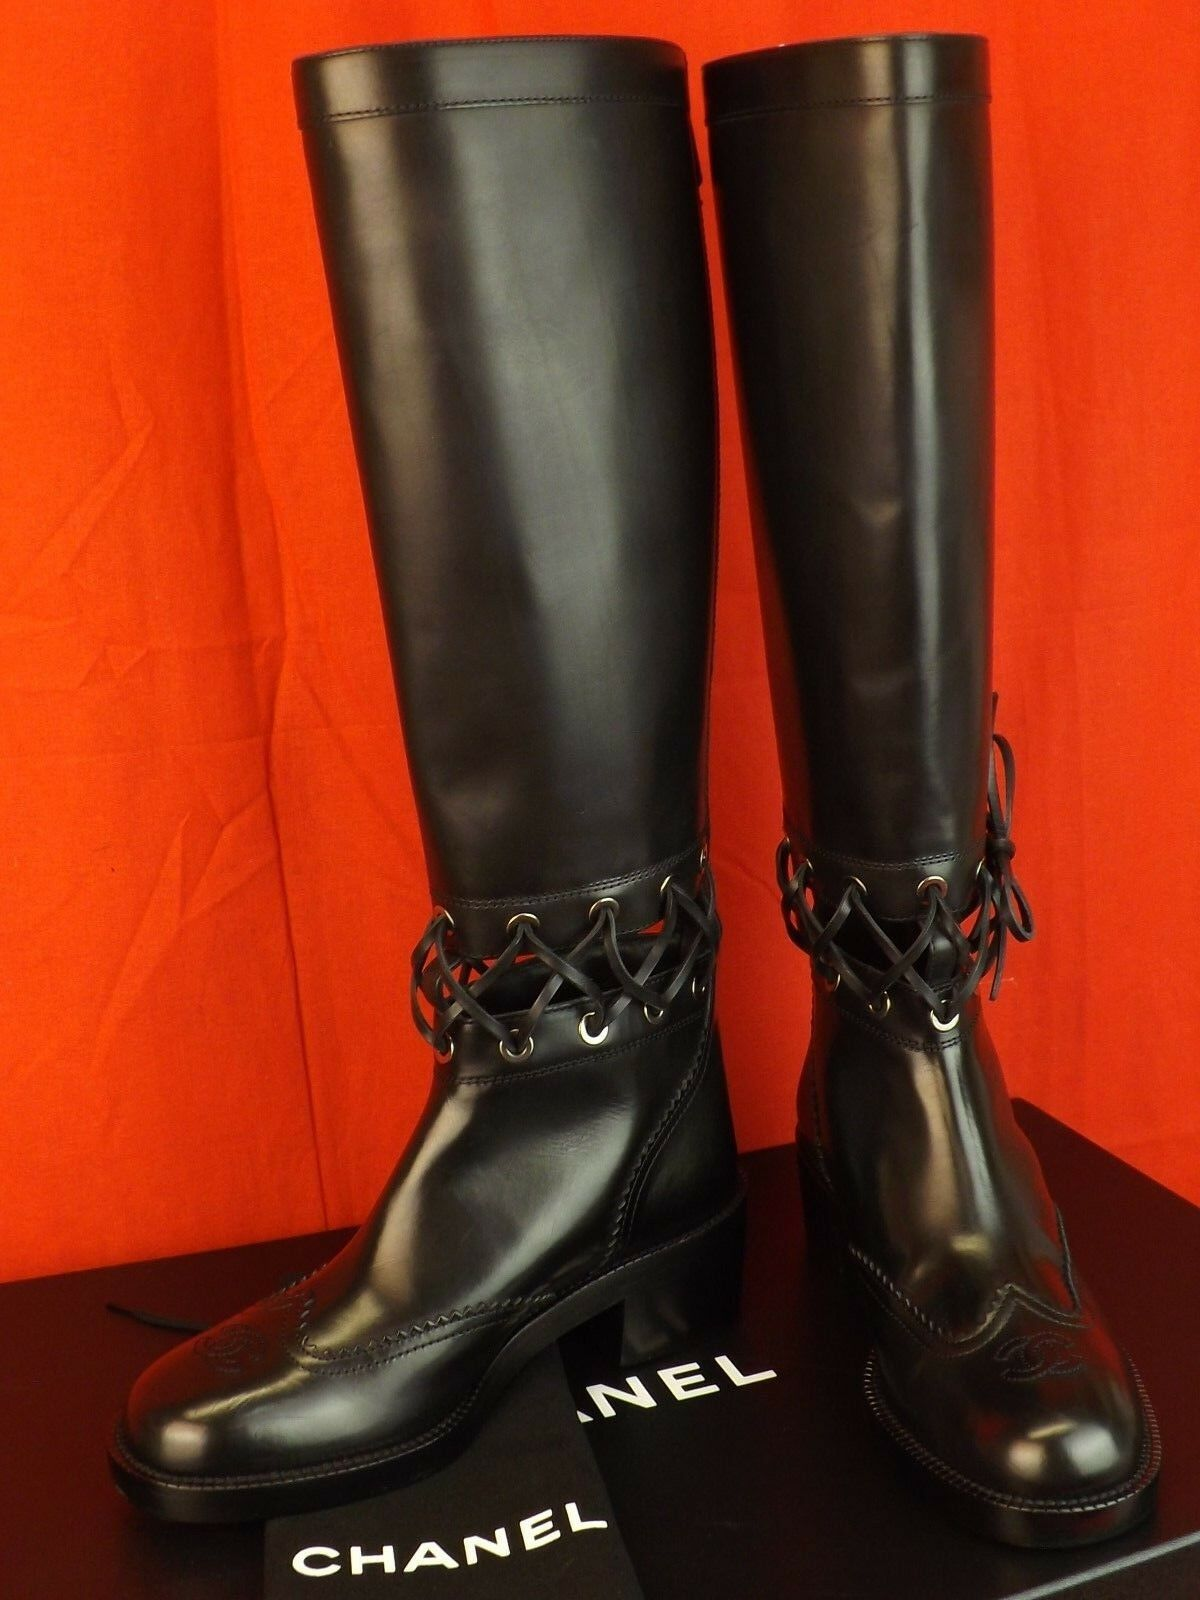 16K NIB CHANEL BLACK LEATHER CUTOUT LACE CC LOGO CORSET RUNWAY BOOTS 39.5 $2K